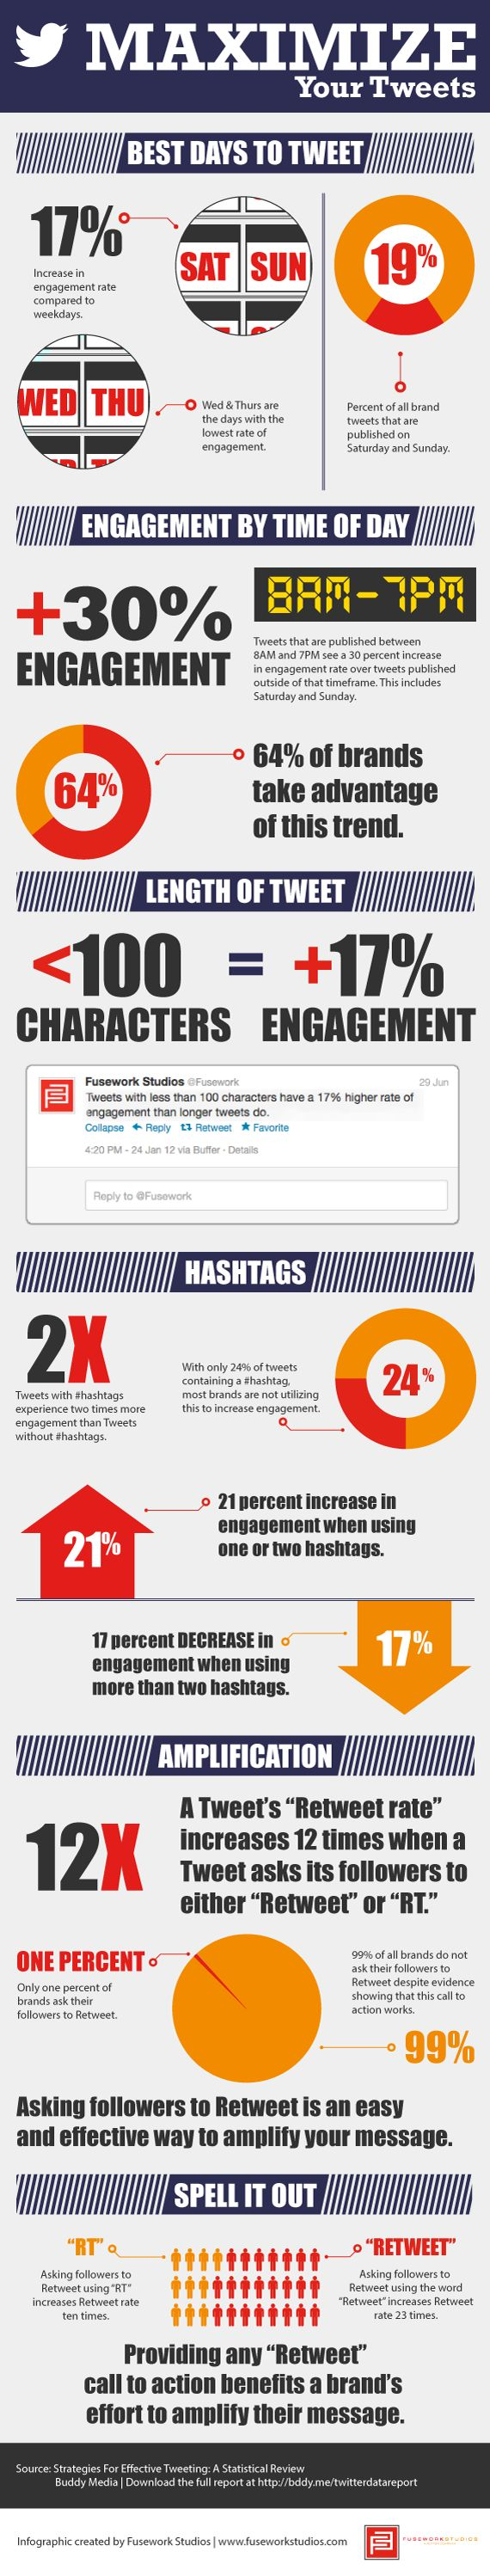 Maximizing your tweets #Twitter #Infographic #SocialMedia